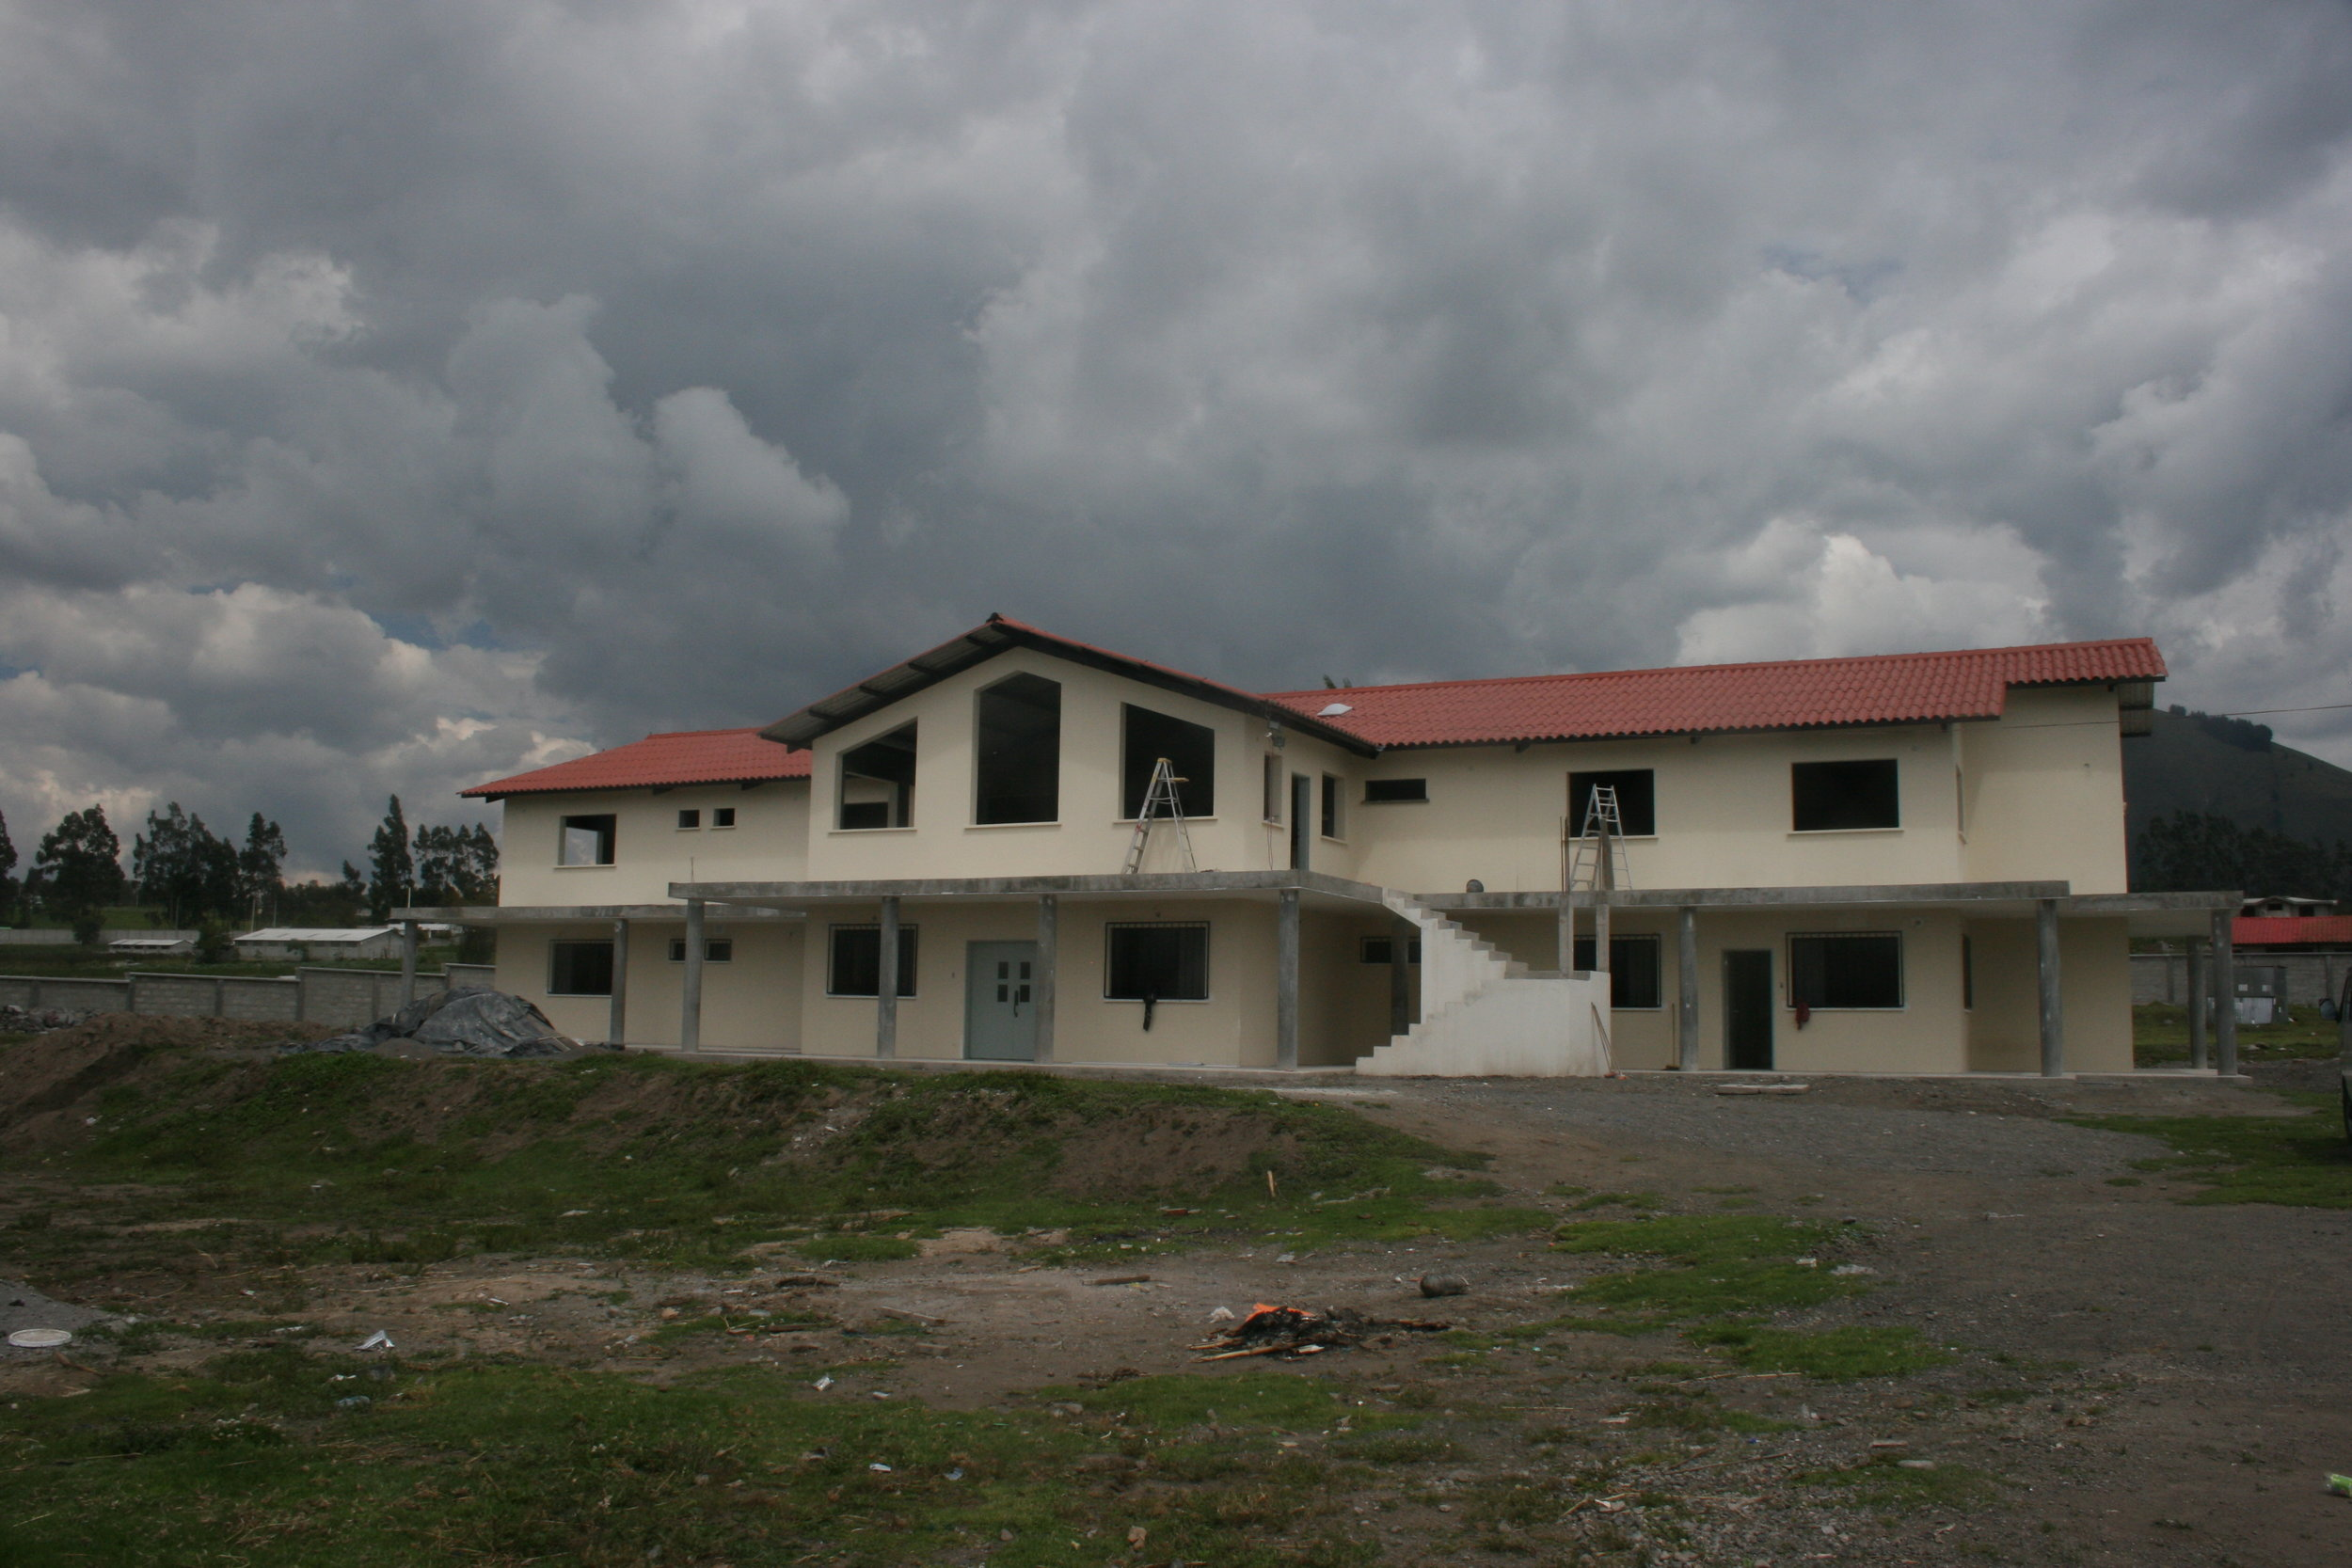 The 11,000 ft. home Dean designed, under construction in Latacunga, Ecuador